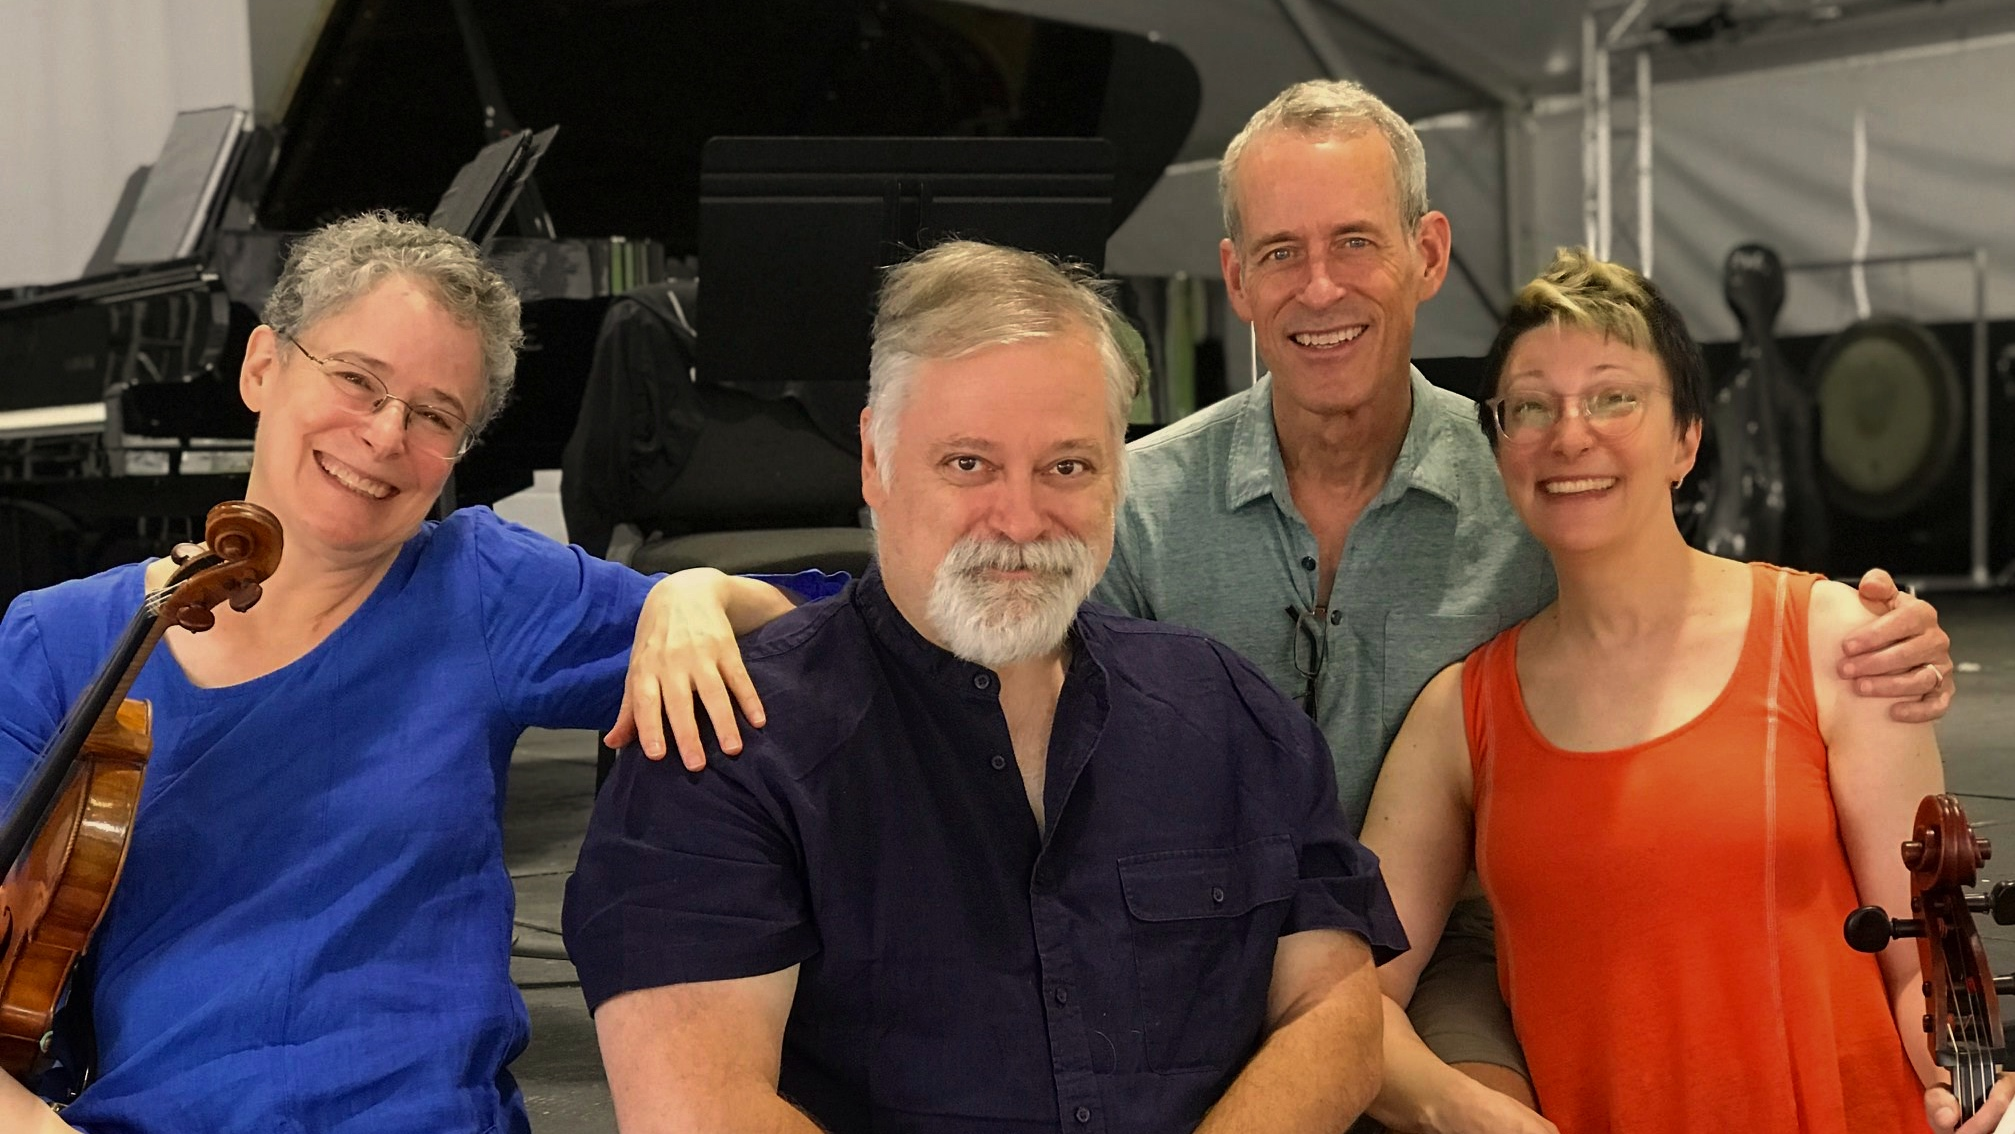 Sharan Levanthal, Hagen, Peter Marshall, and Sarah Kapps in rehearsal for Piano Trio No. 7's premiere in July 2019 at the Wintergreen Music Fesival.